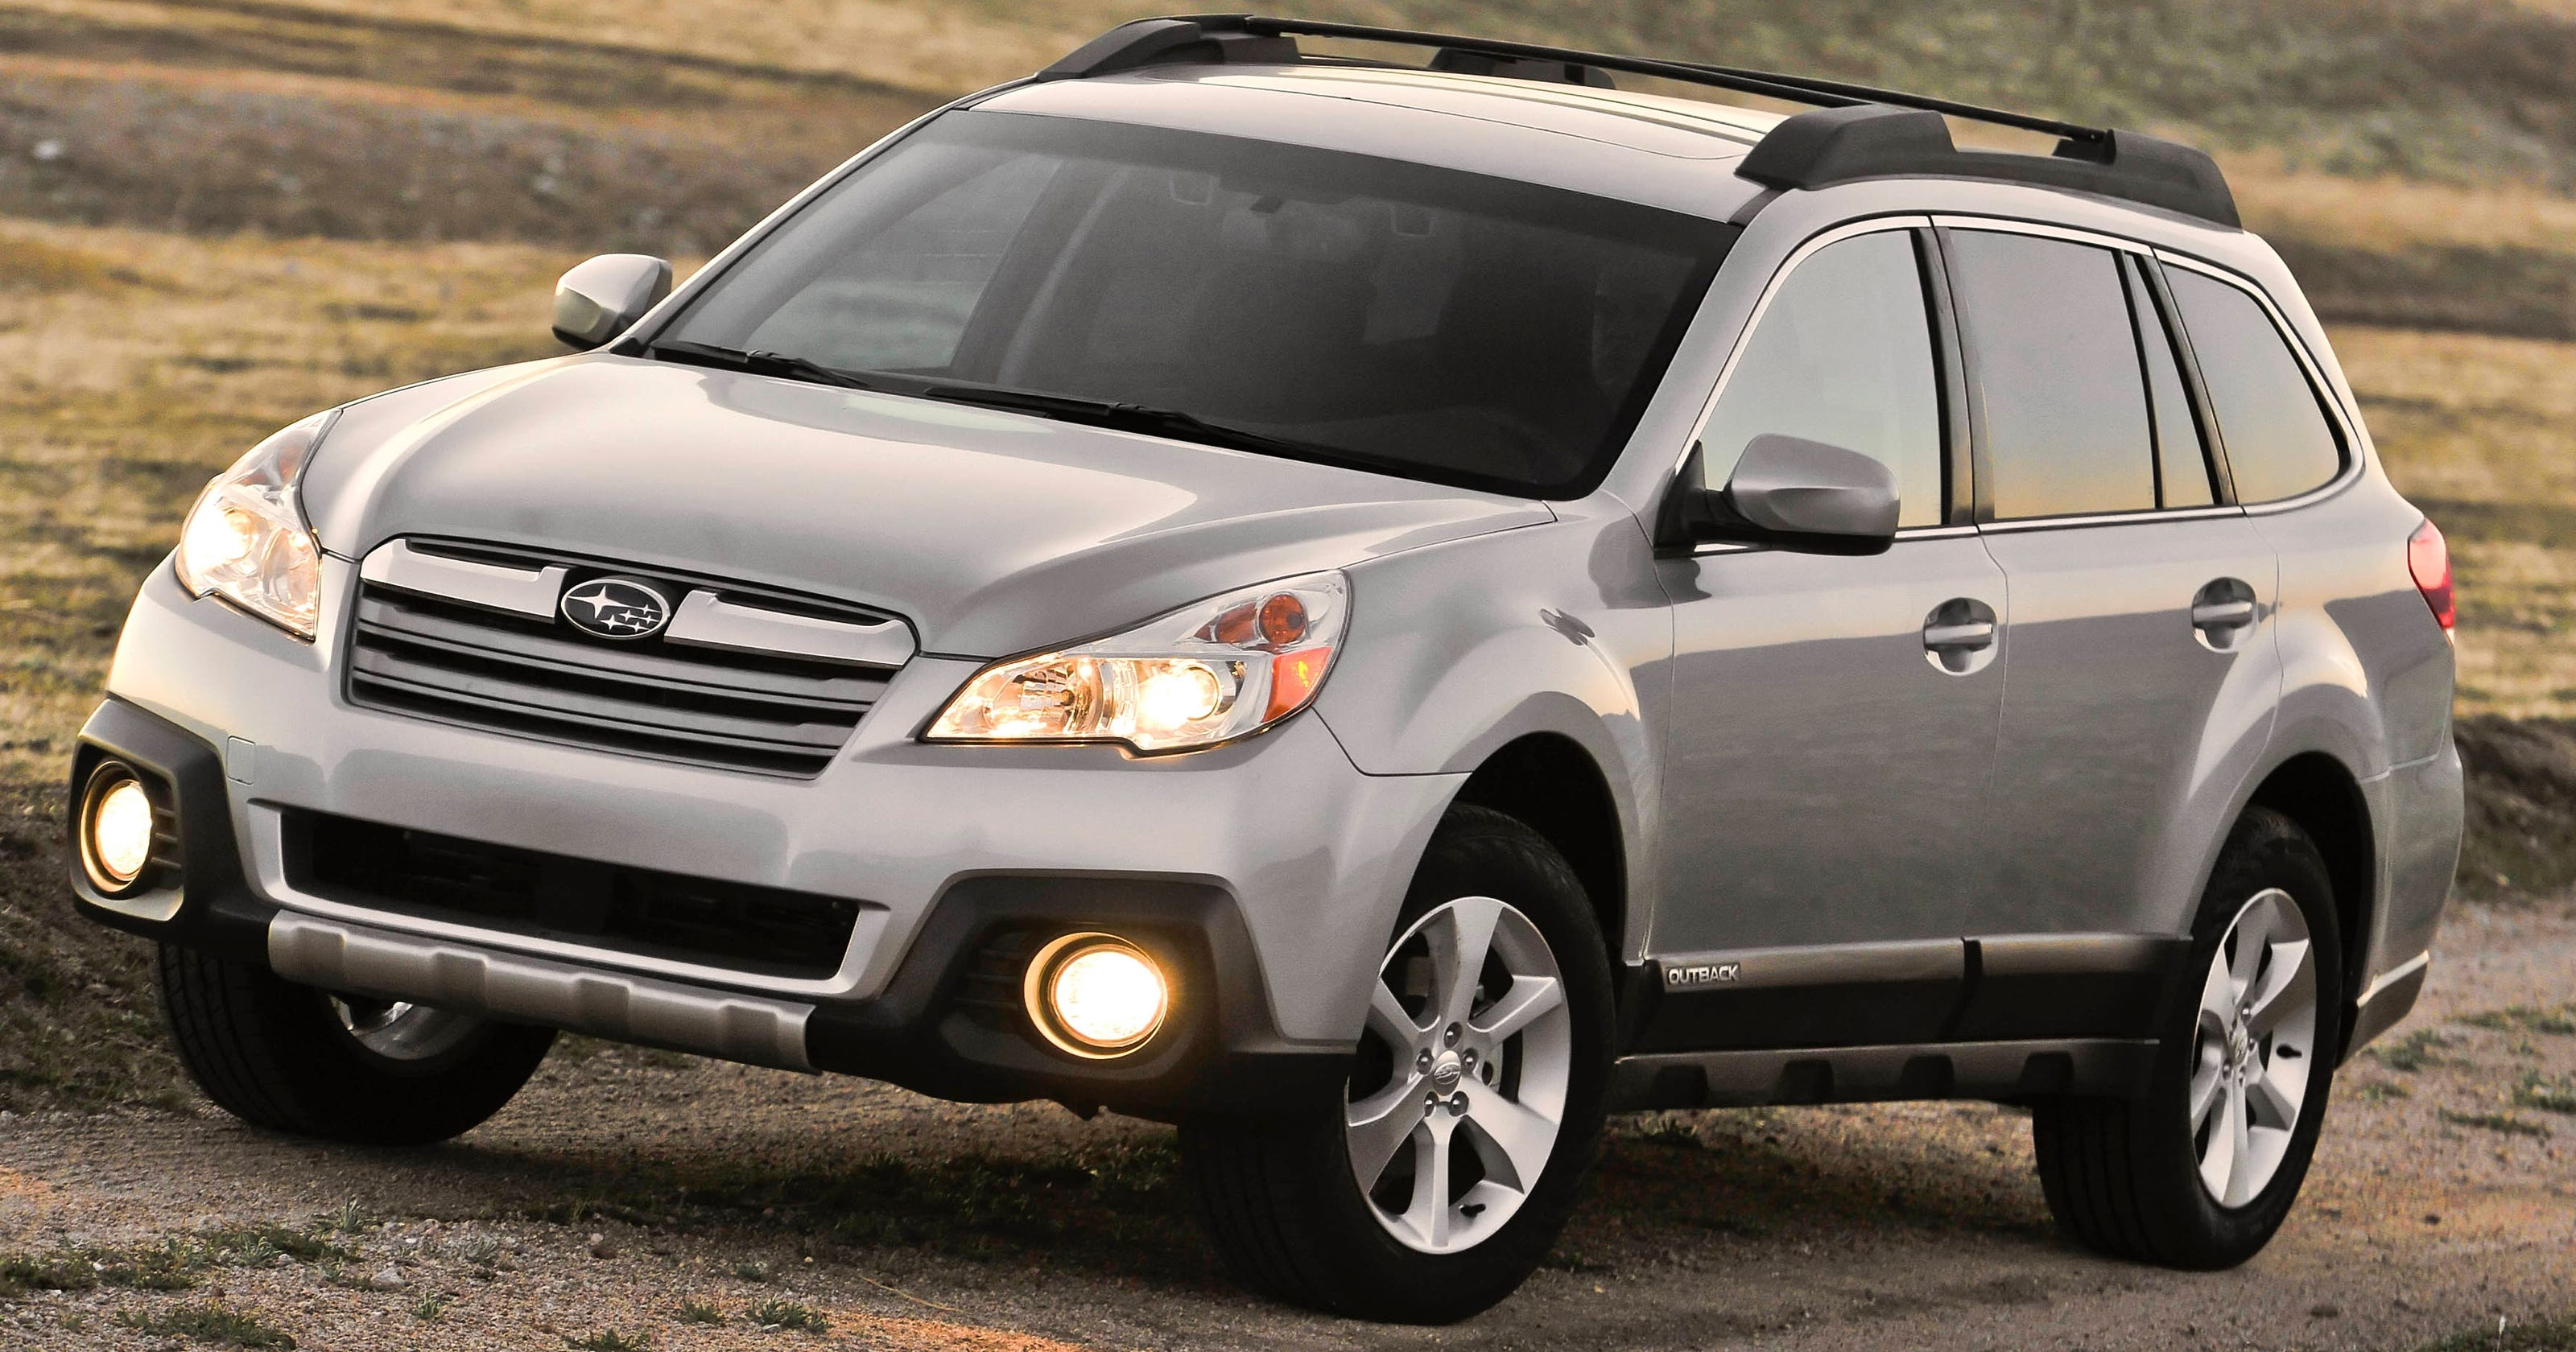 subaru recalls outback legacy for faulty steering. Black Bedroom Furniture Sets. Home Design Ideas